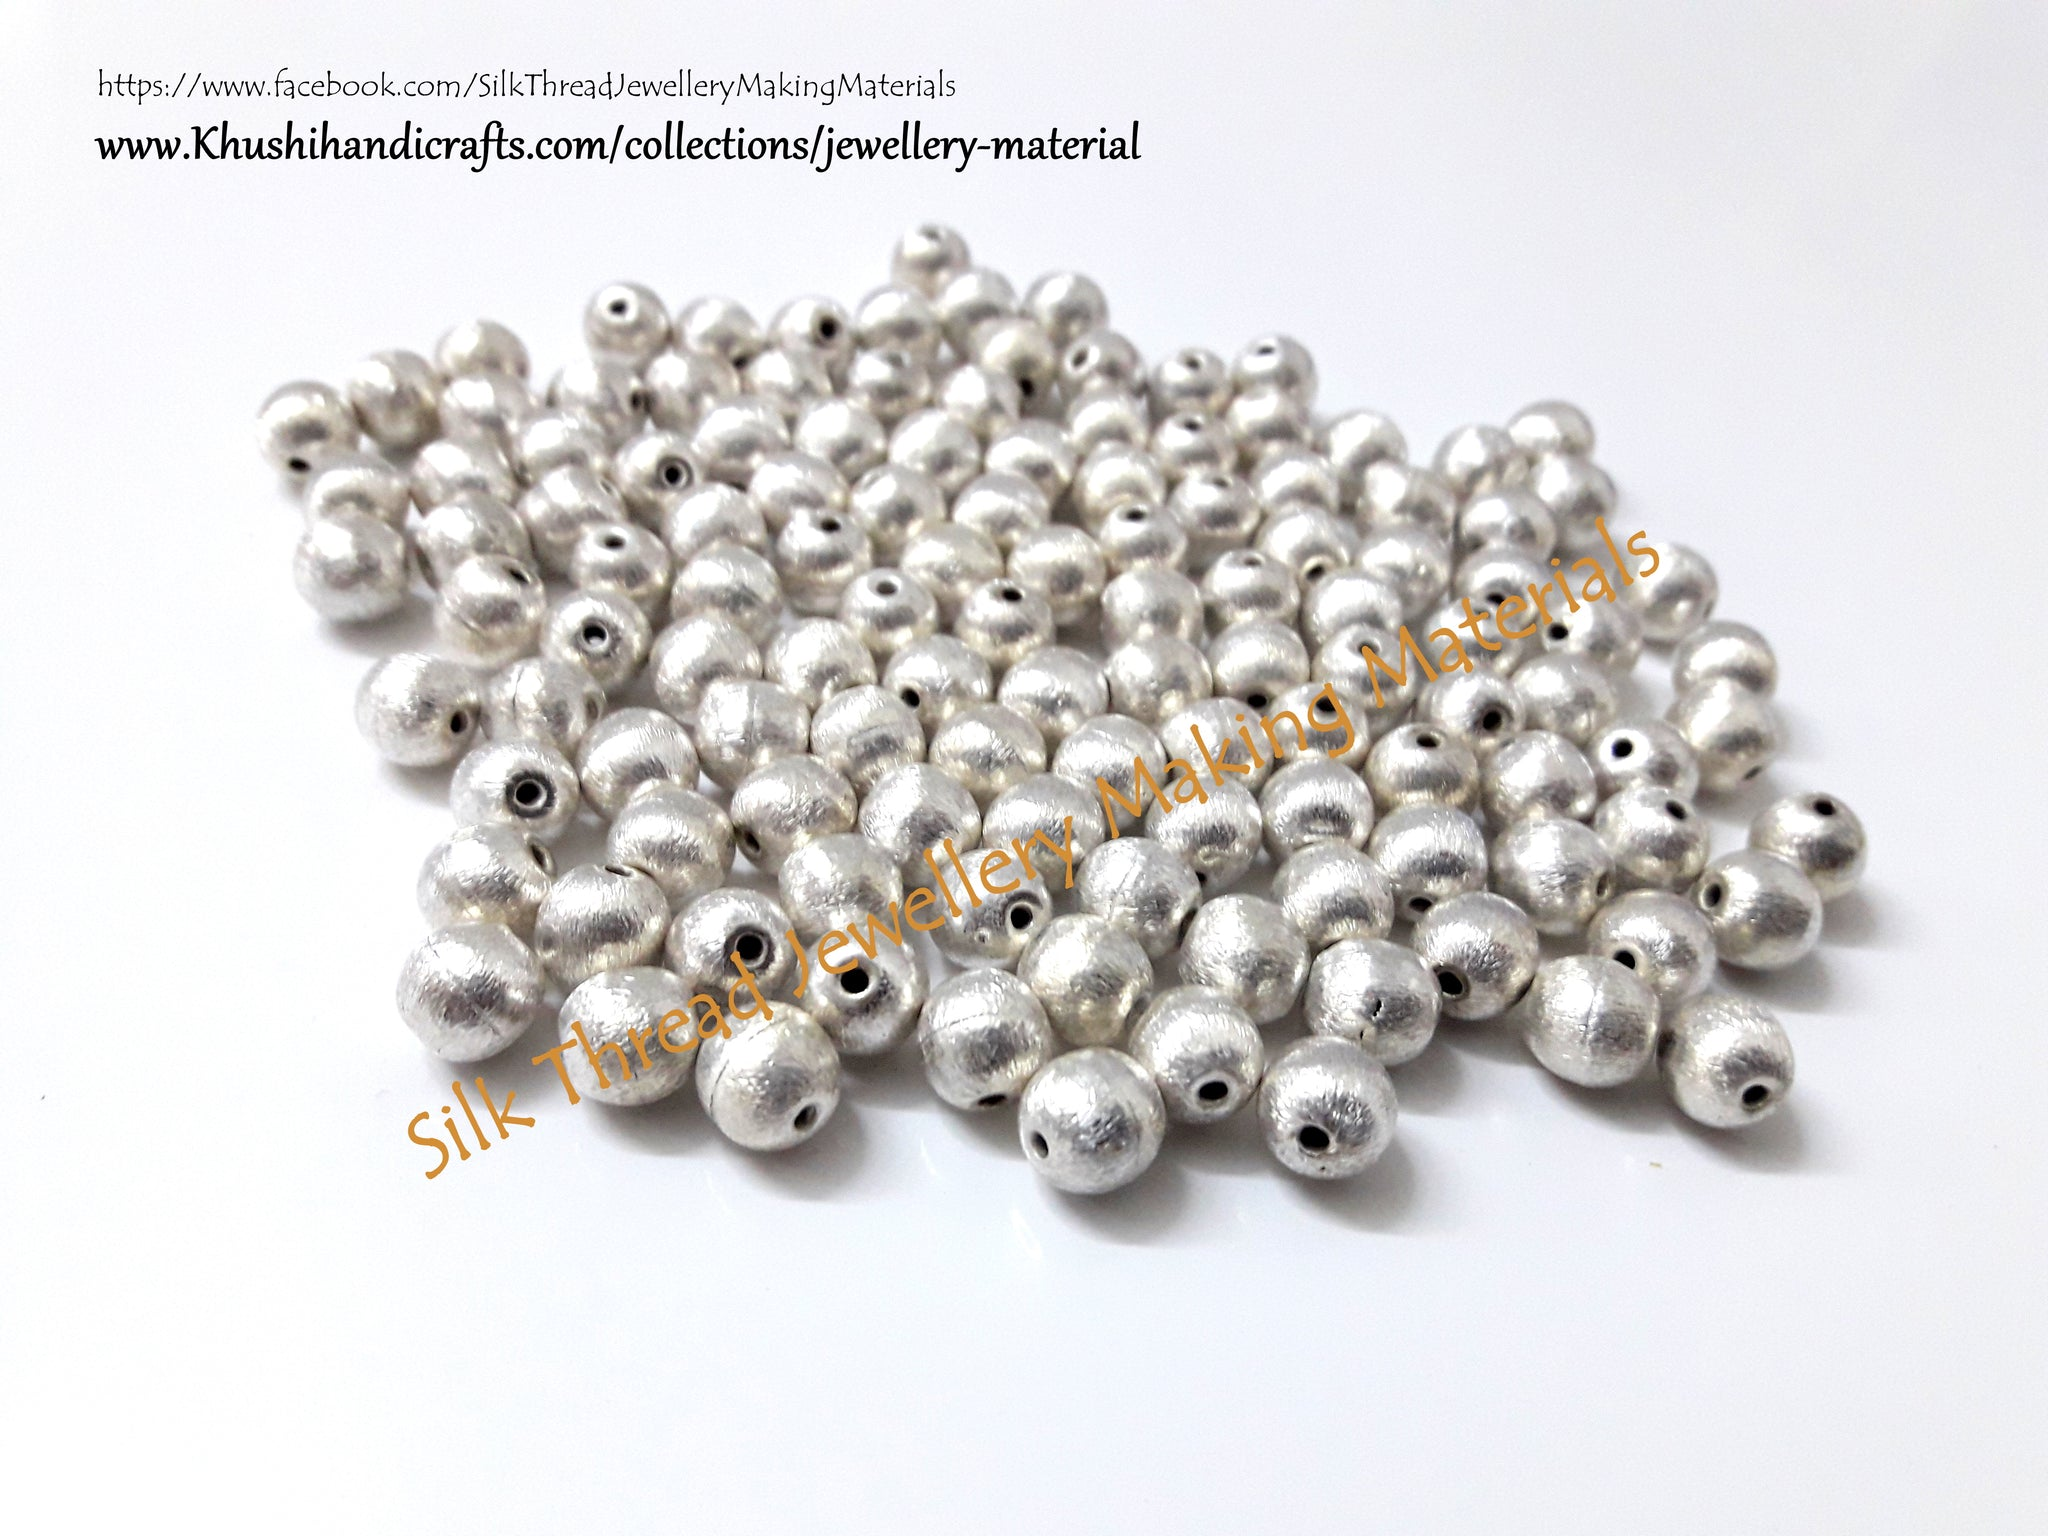 stones beads a flat swarovski here seedbeads novelty co bulk bead in click back sale list international for home price